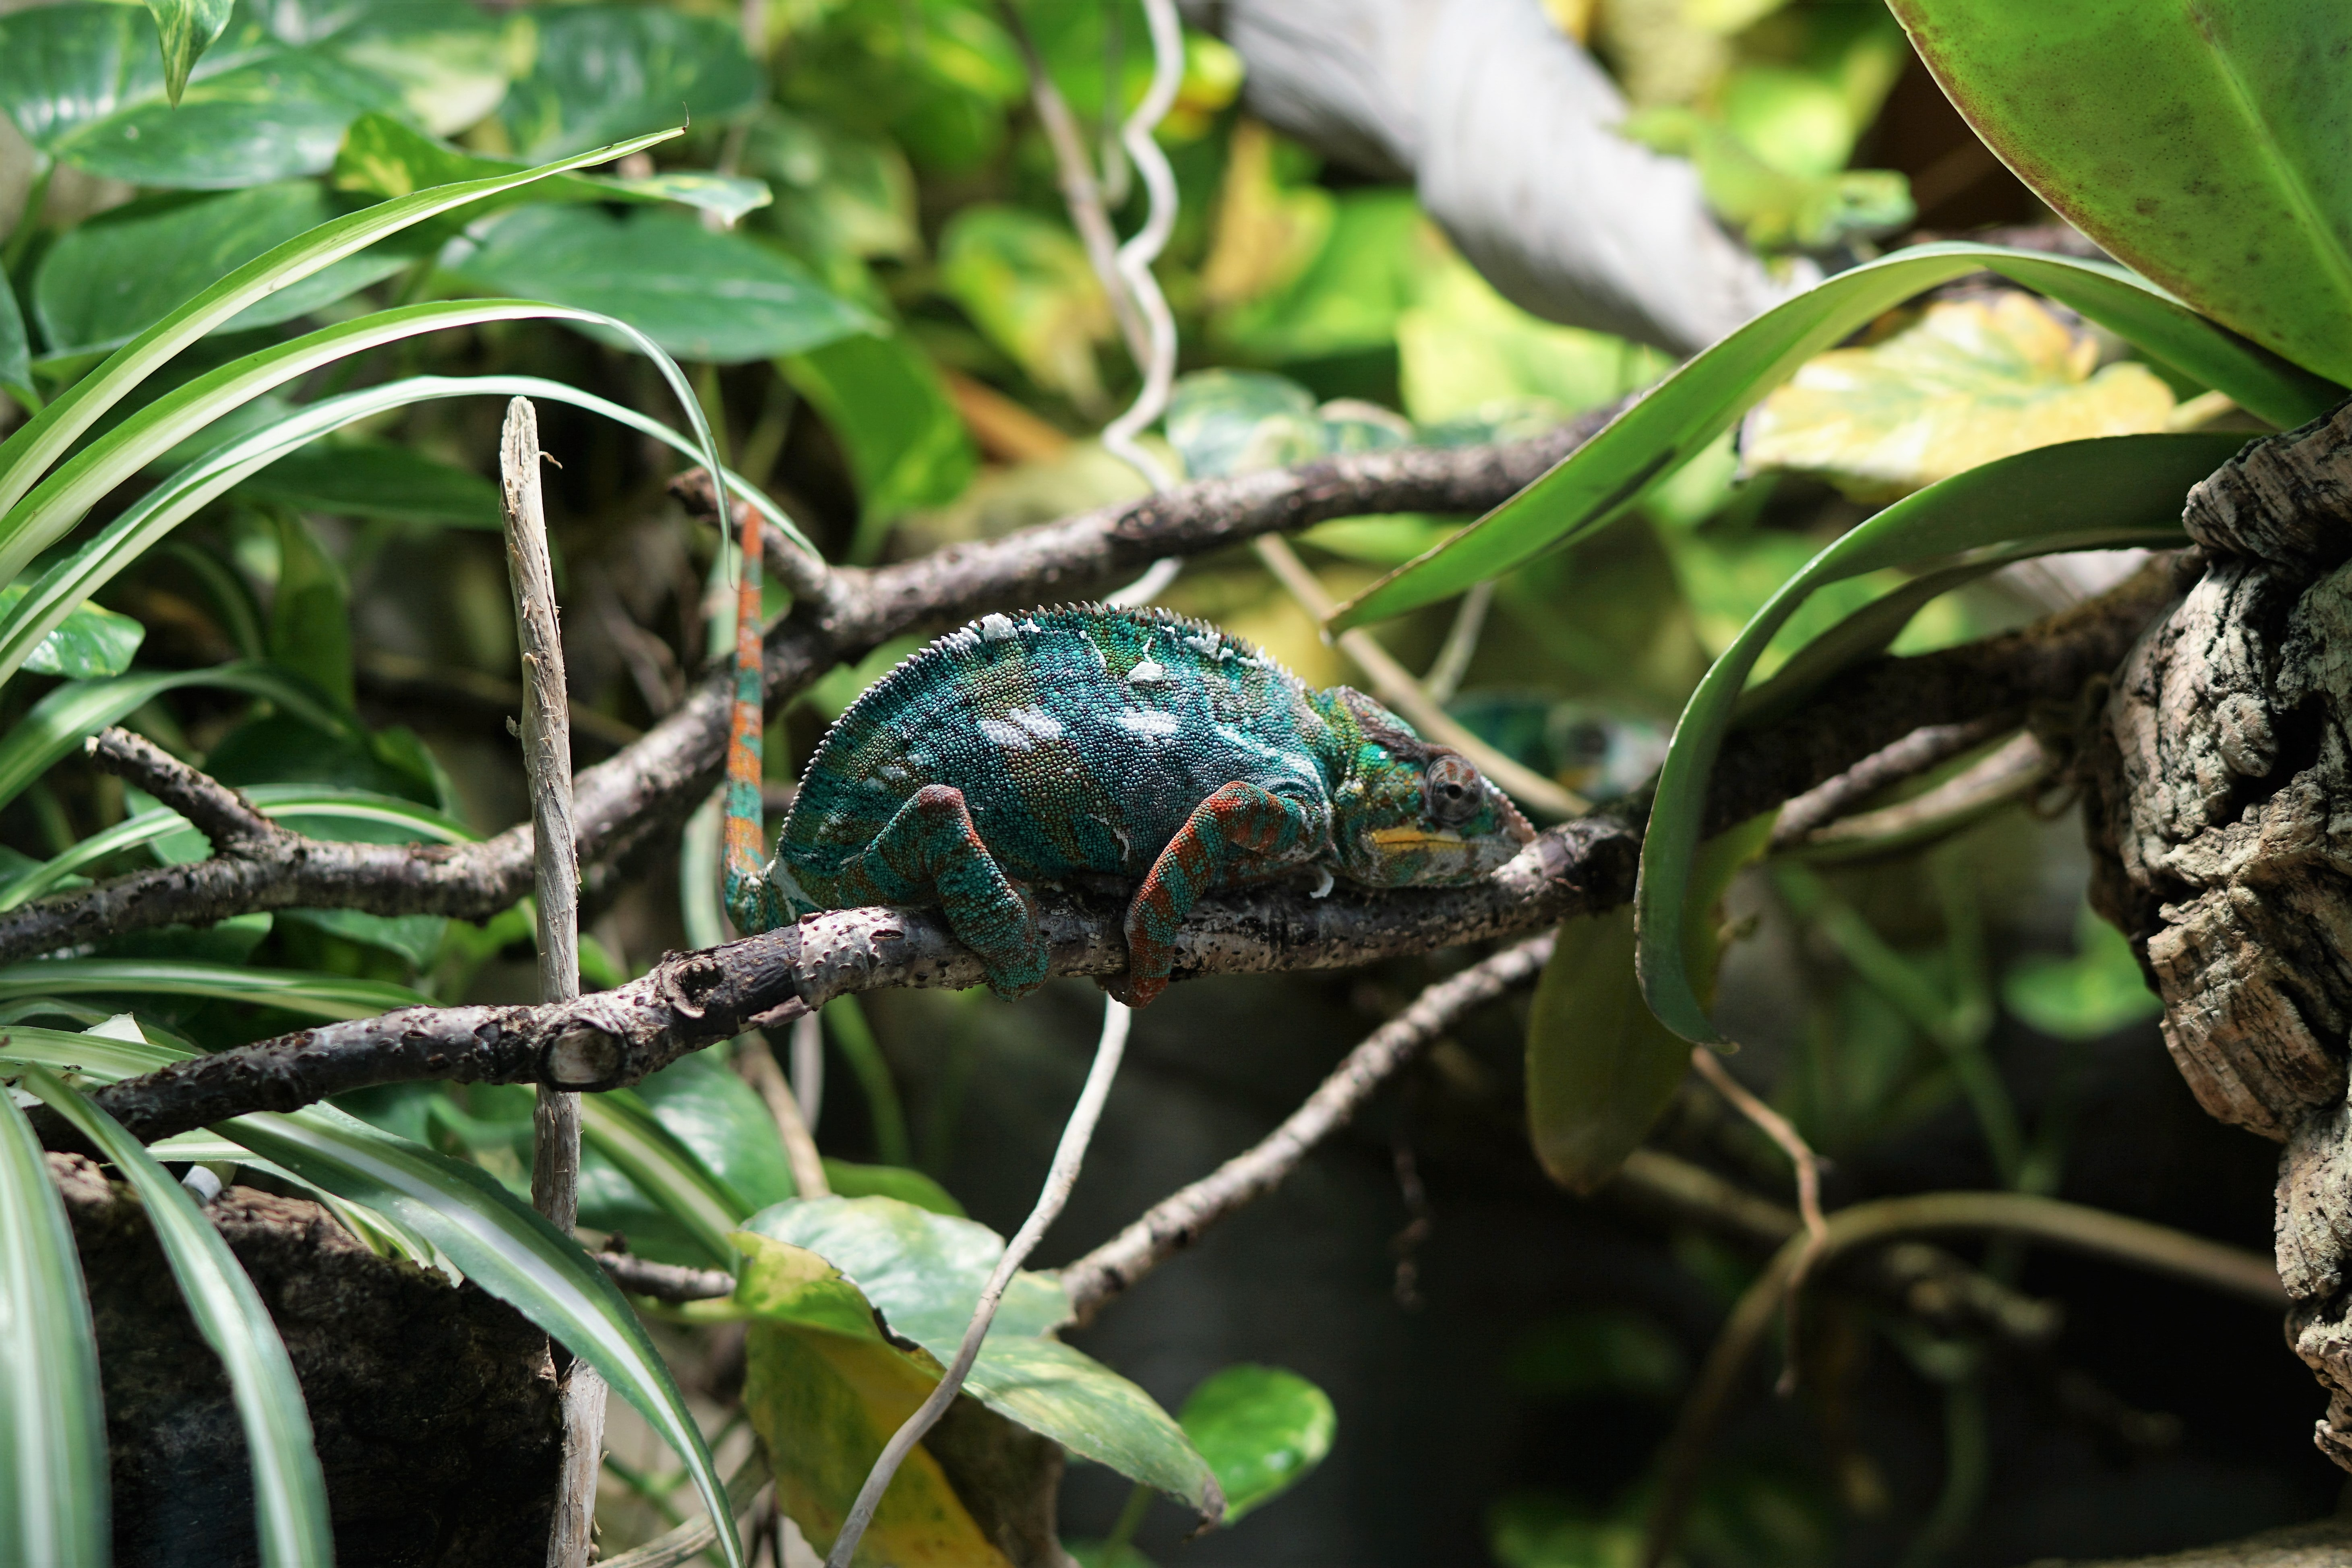 Chameleon sits on a branch in the jungle blending in with the leaves